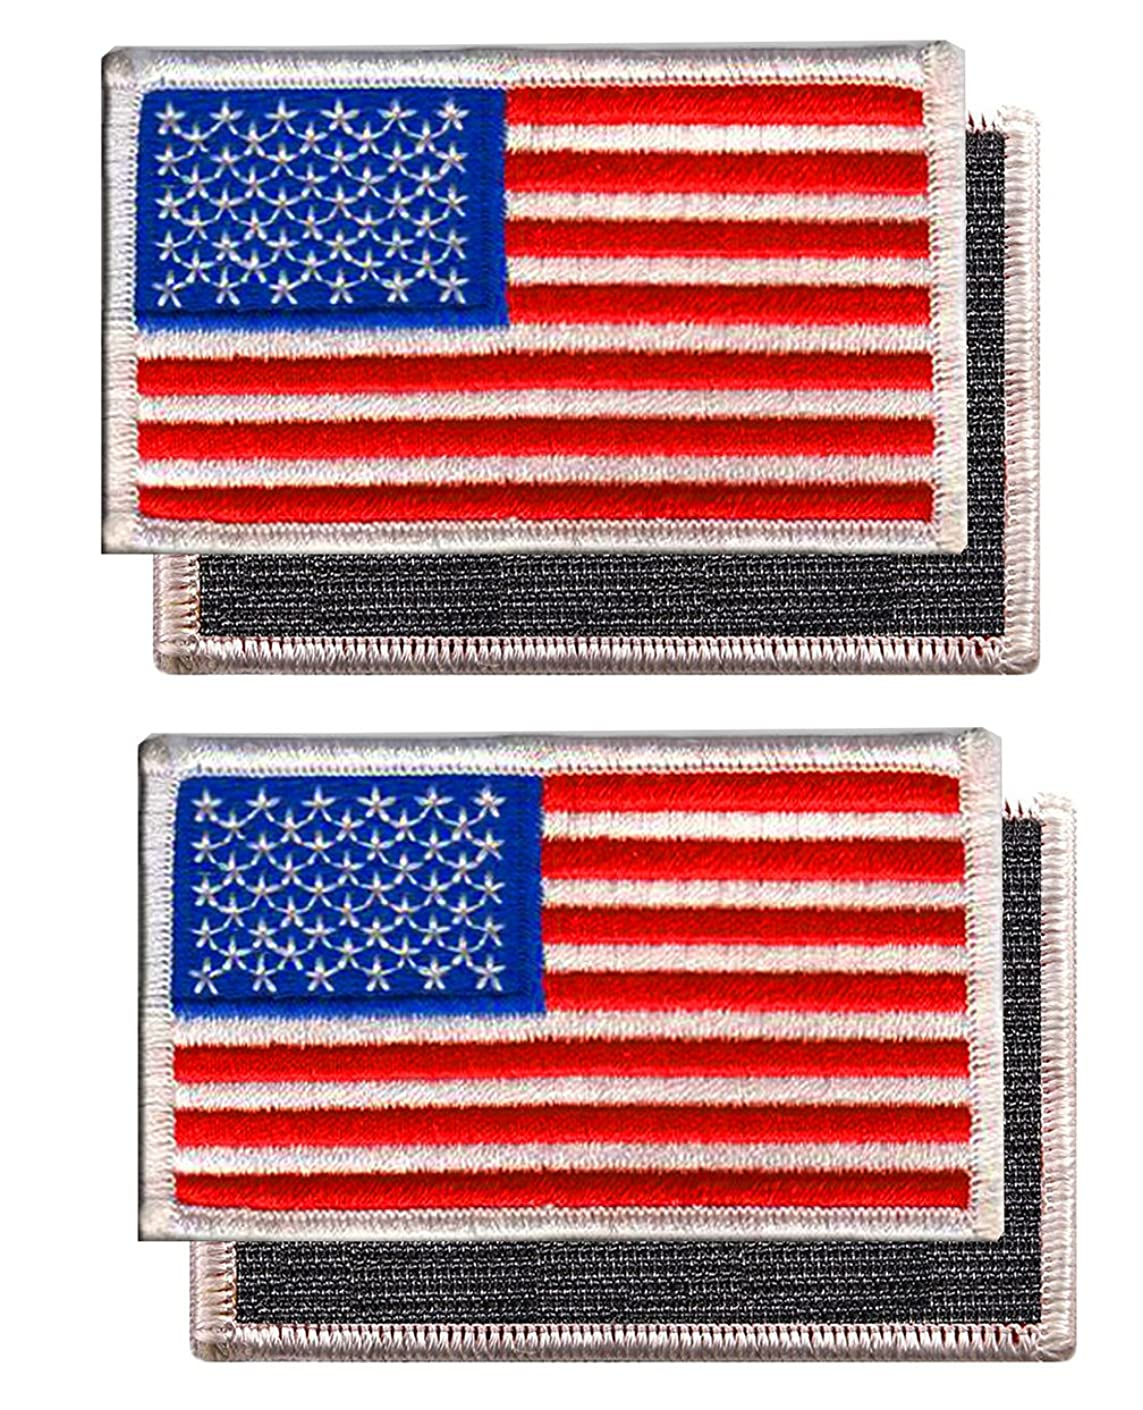 2 PACK - American Flag Embroidered Patch white border USA United States of America w/ Fastener